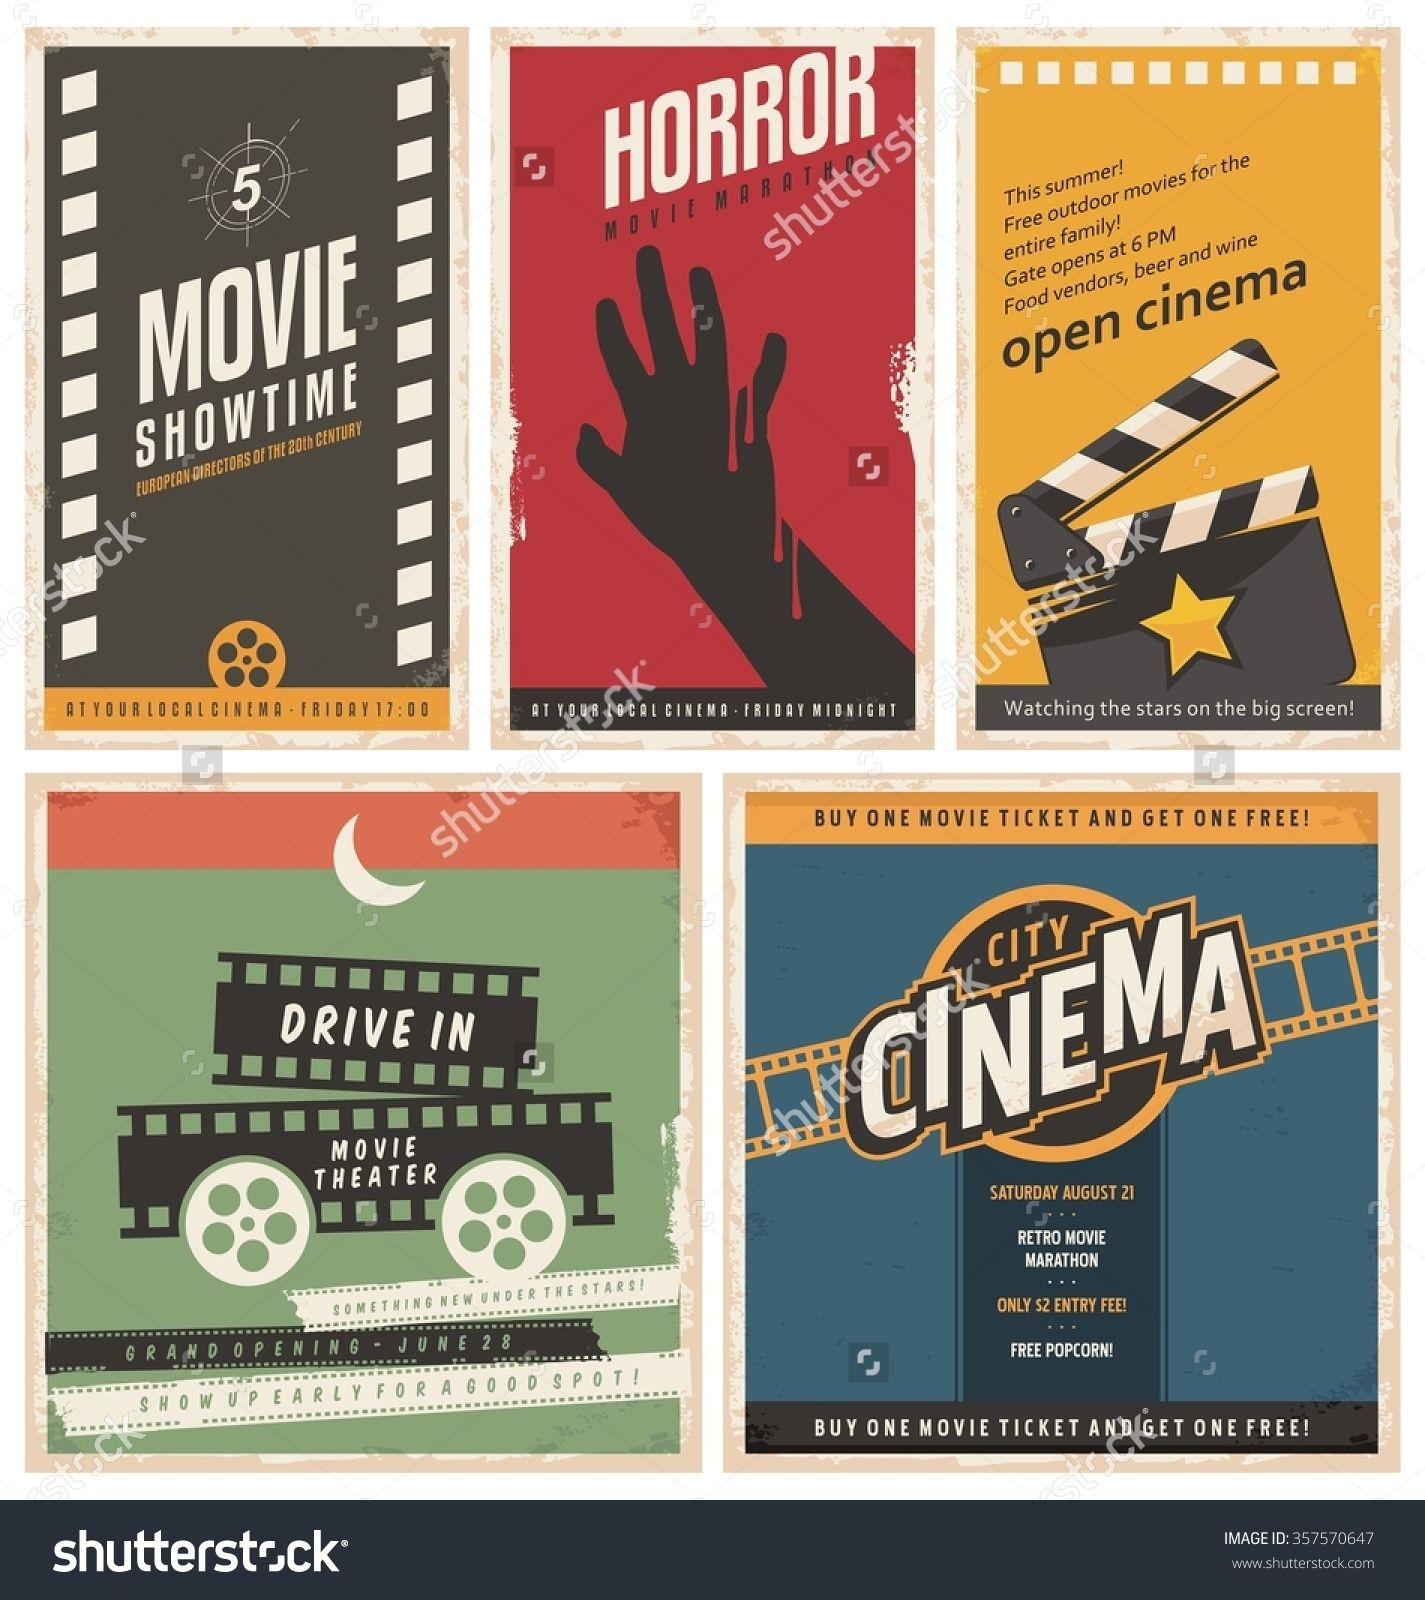 Pin By Her Campus Uga On Tips For Baby Bulldawgs Cinema Posters Vintage Movies Movie Posters Design